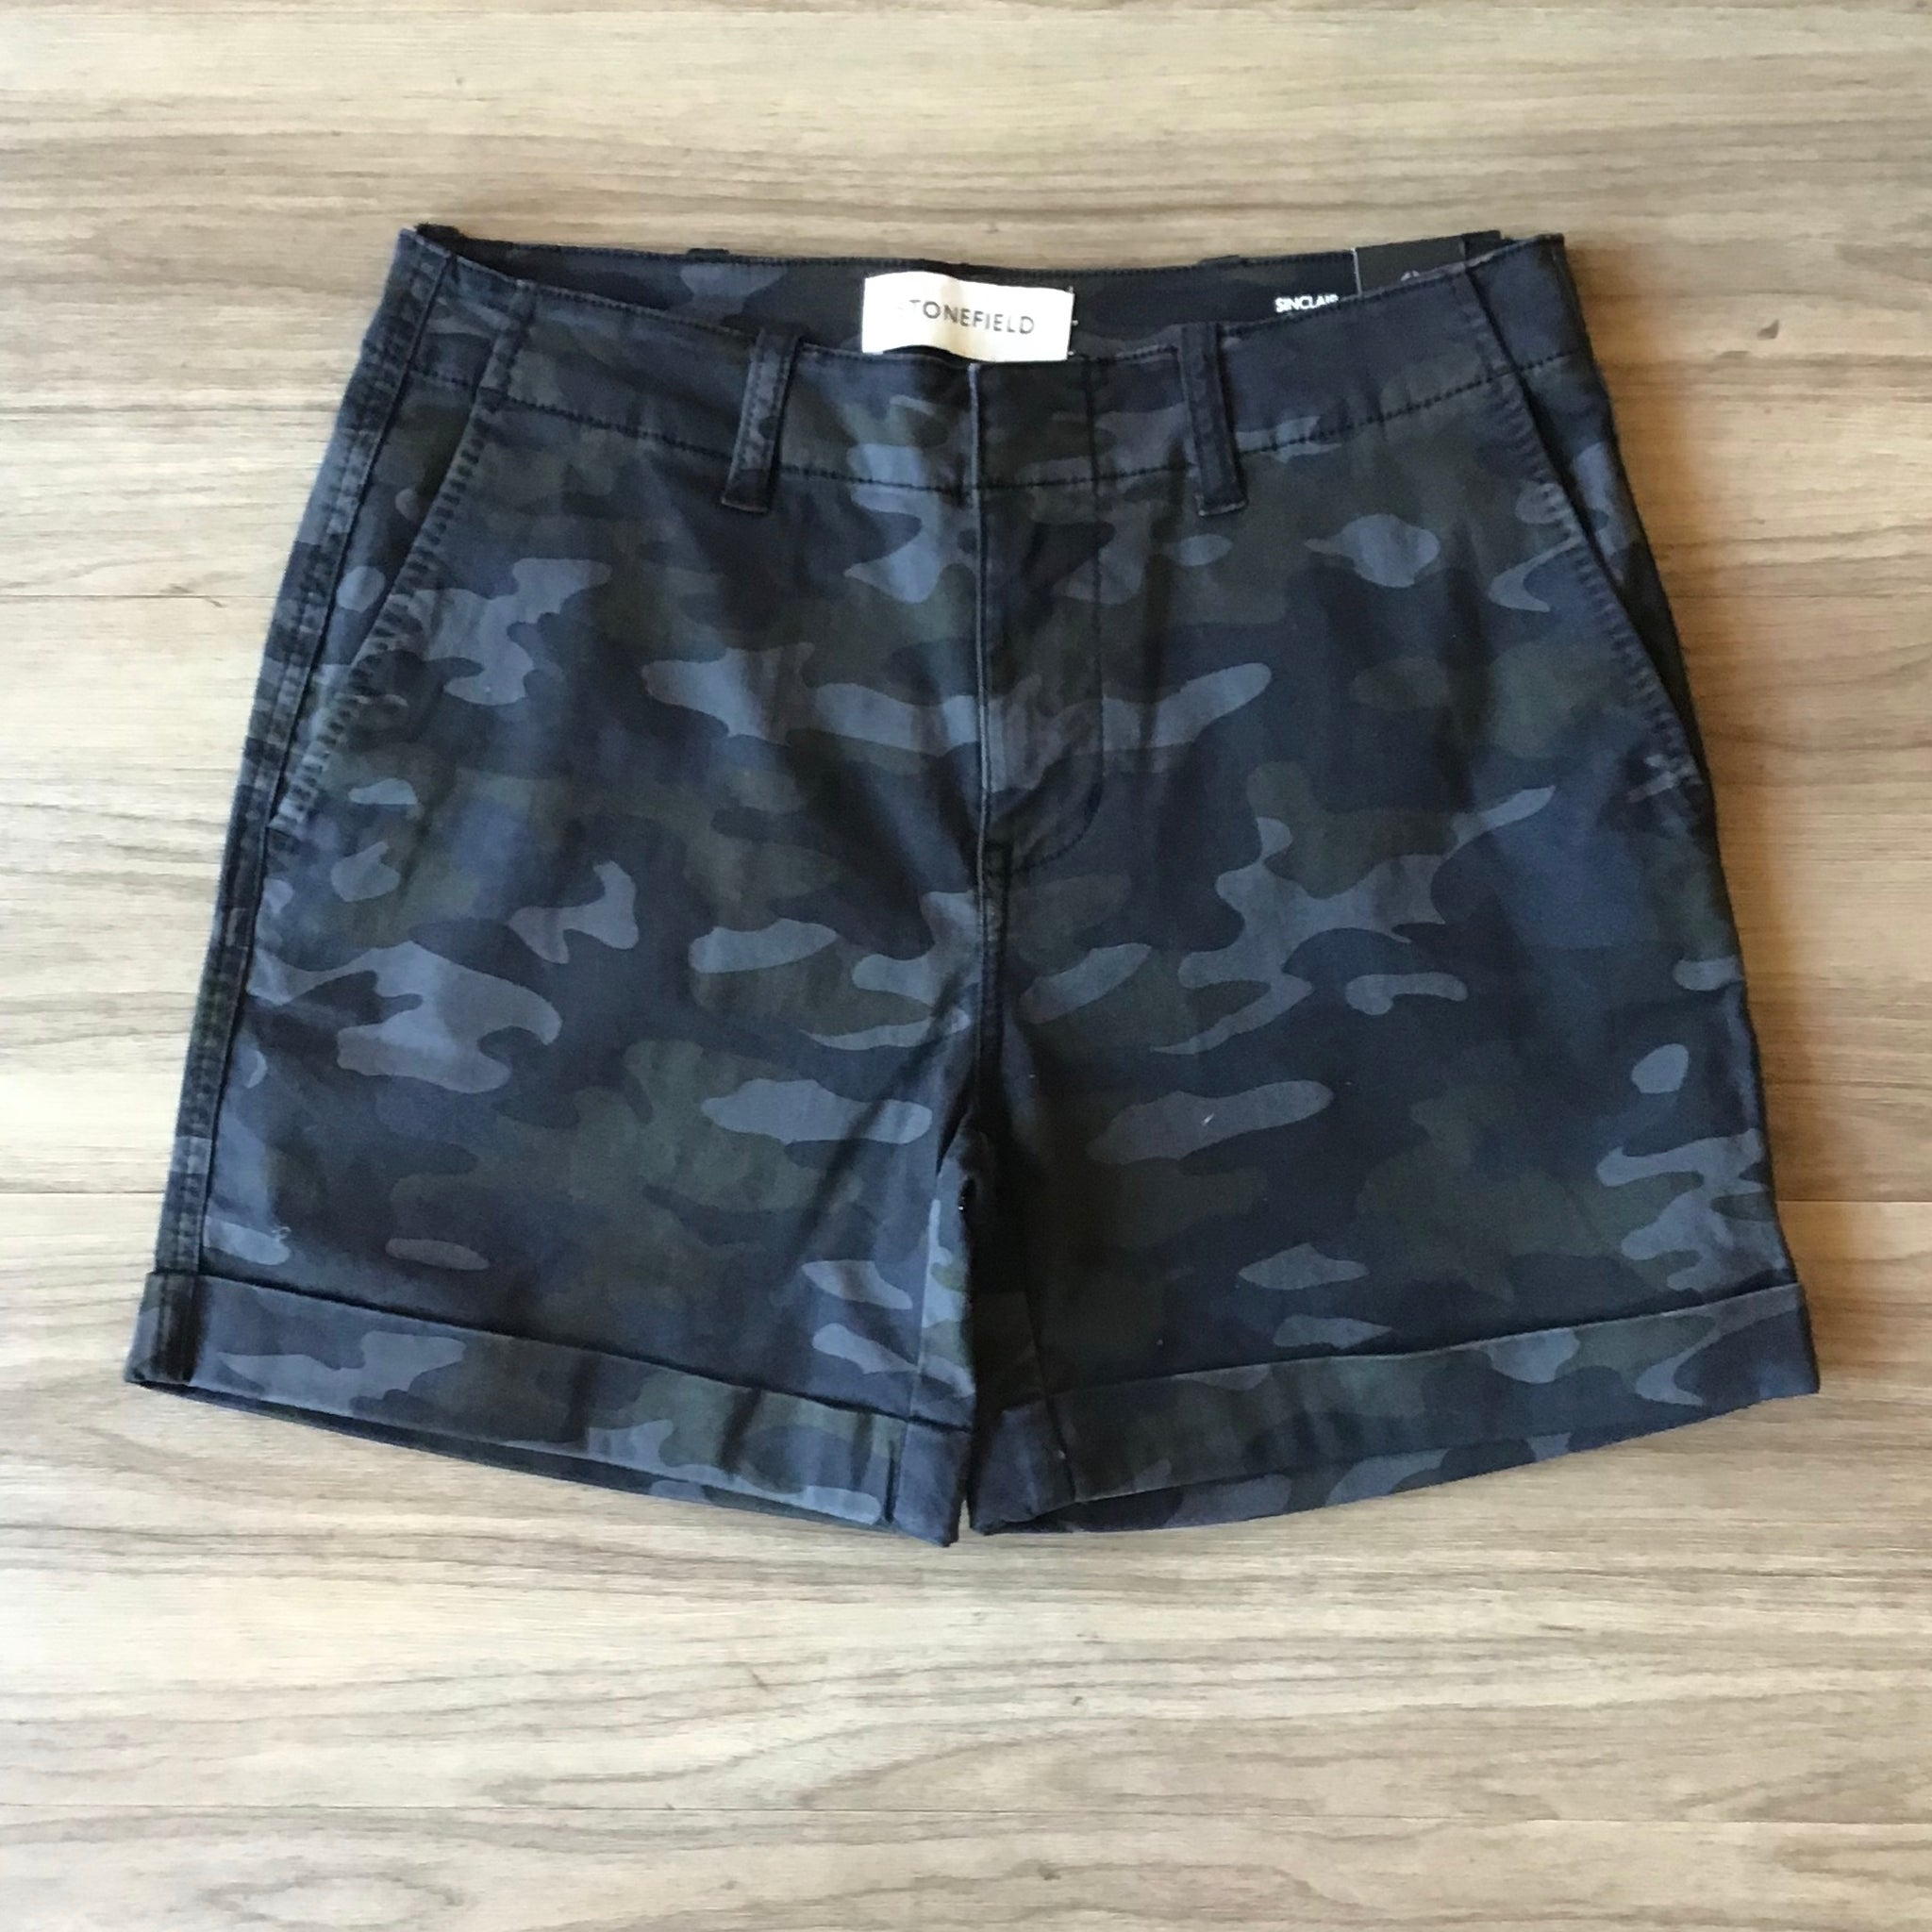 Stonefield Sinclaire Short In Grey Camo SW11003-GYC